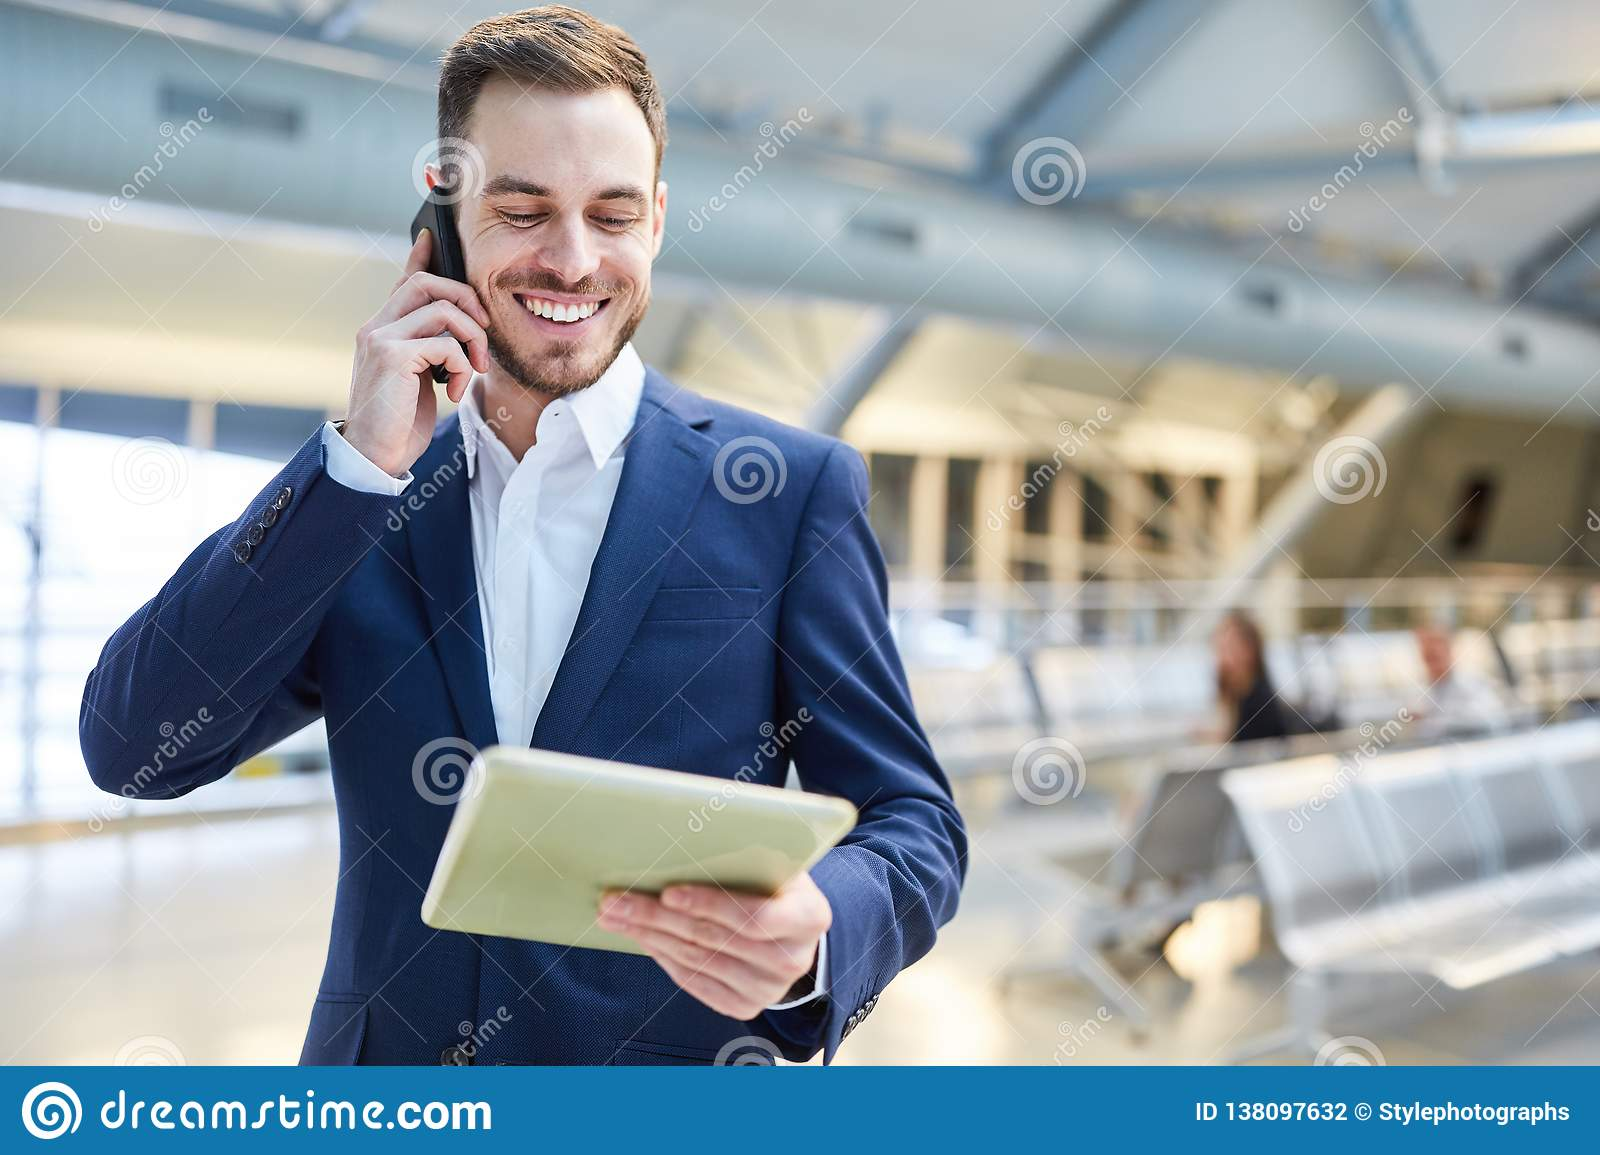 Businessman with tablet PC and mobile phone is pleased